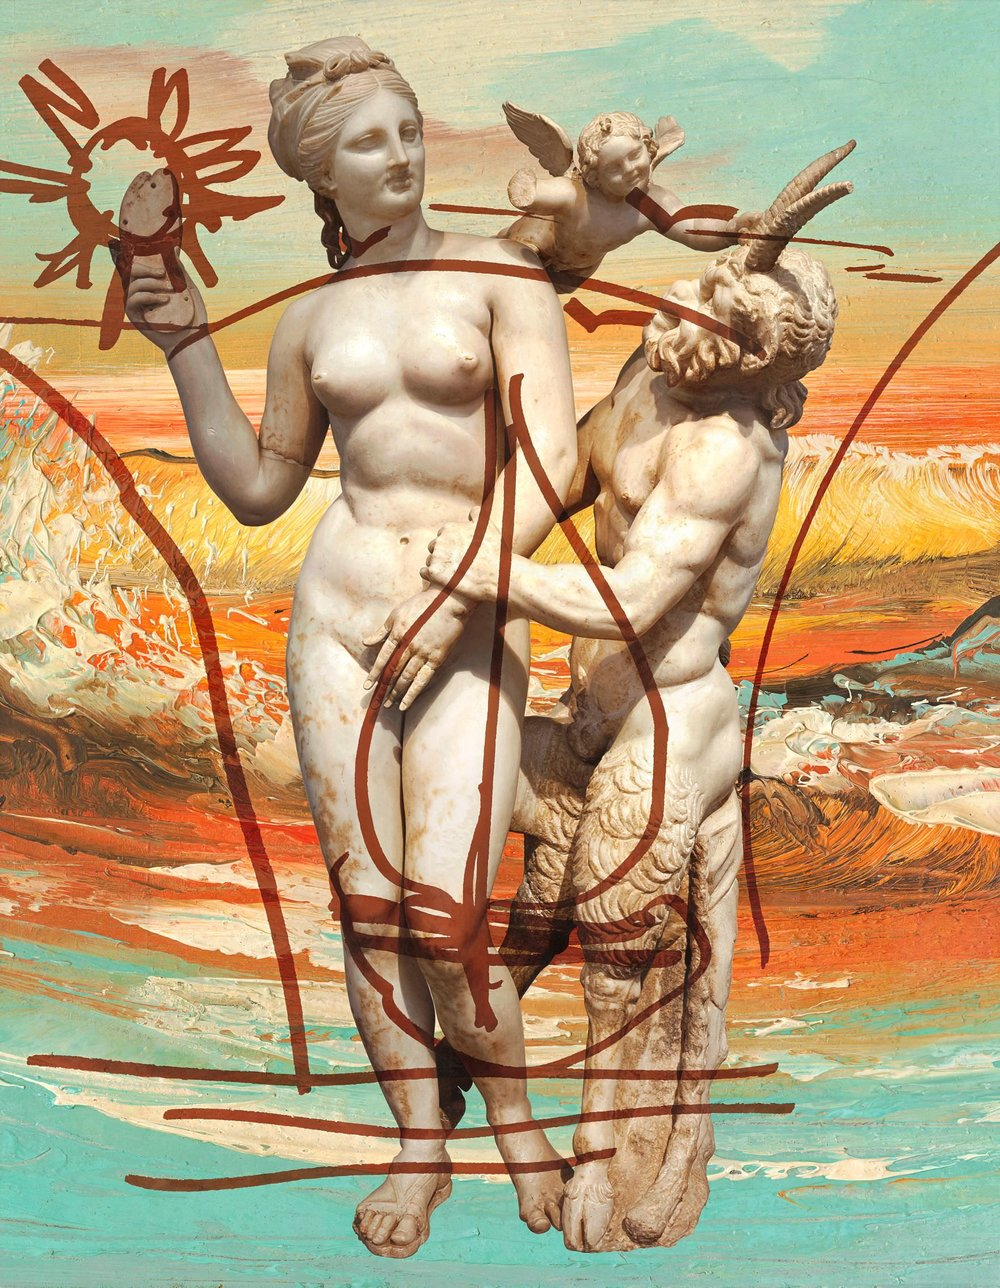 Jeff Koons (b. 1955); Antiquity 1; 2009–12; Oil on canvas; 274.3 x 213.4 cm; Collection of the artist © Jeff Koons. Photo: Tom Powell Imaging